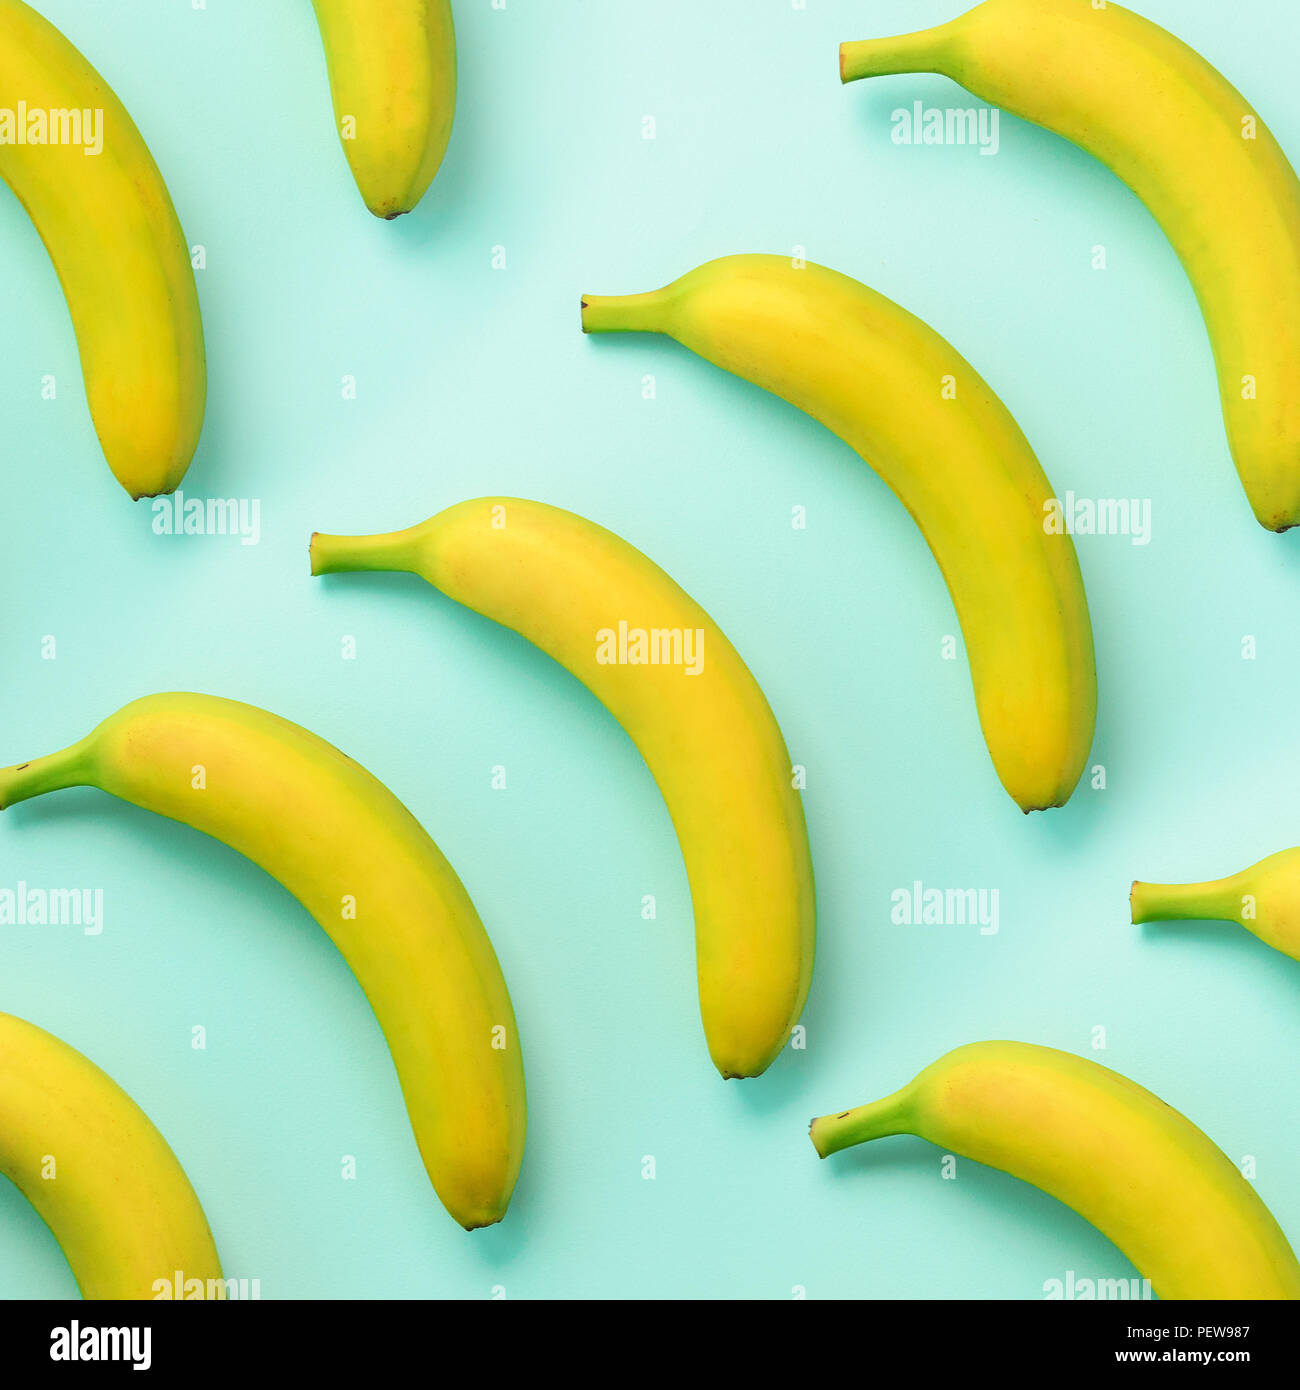 Colorful fruit pattern. Bananas over blue background. Square crop. Top view. Pop art design, creative summer concept. Minimal flat lay style - Stock Image